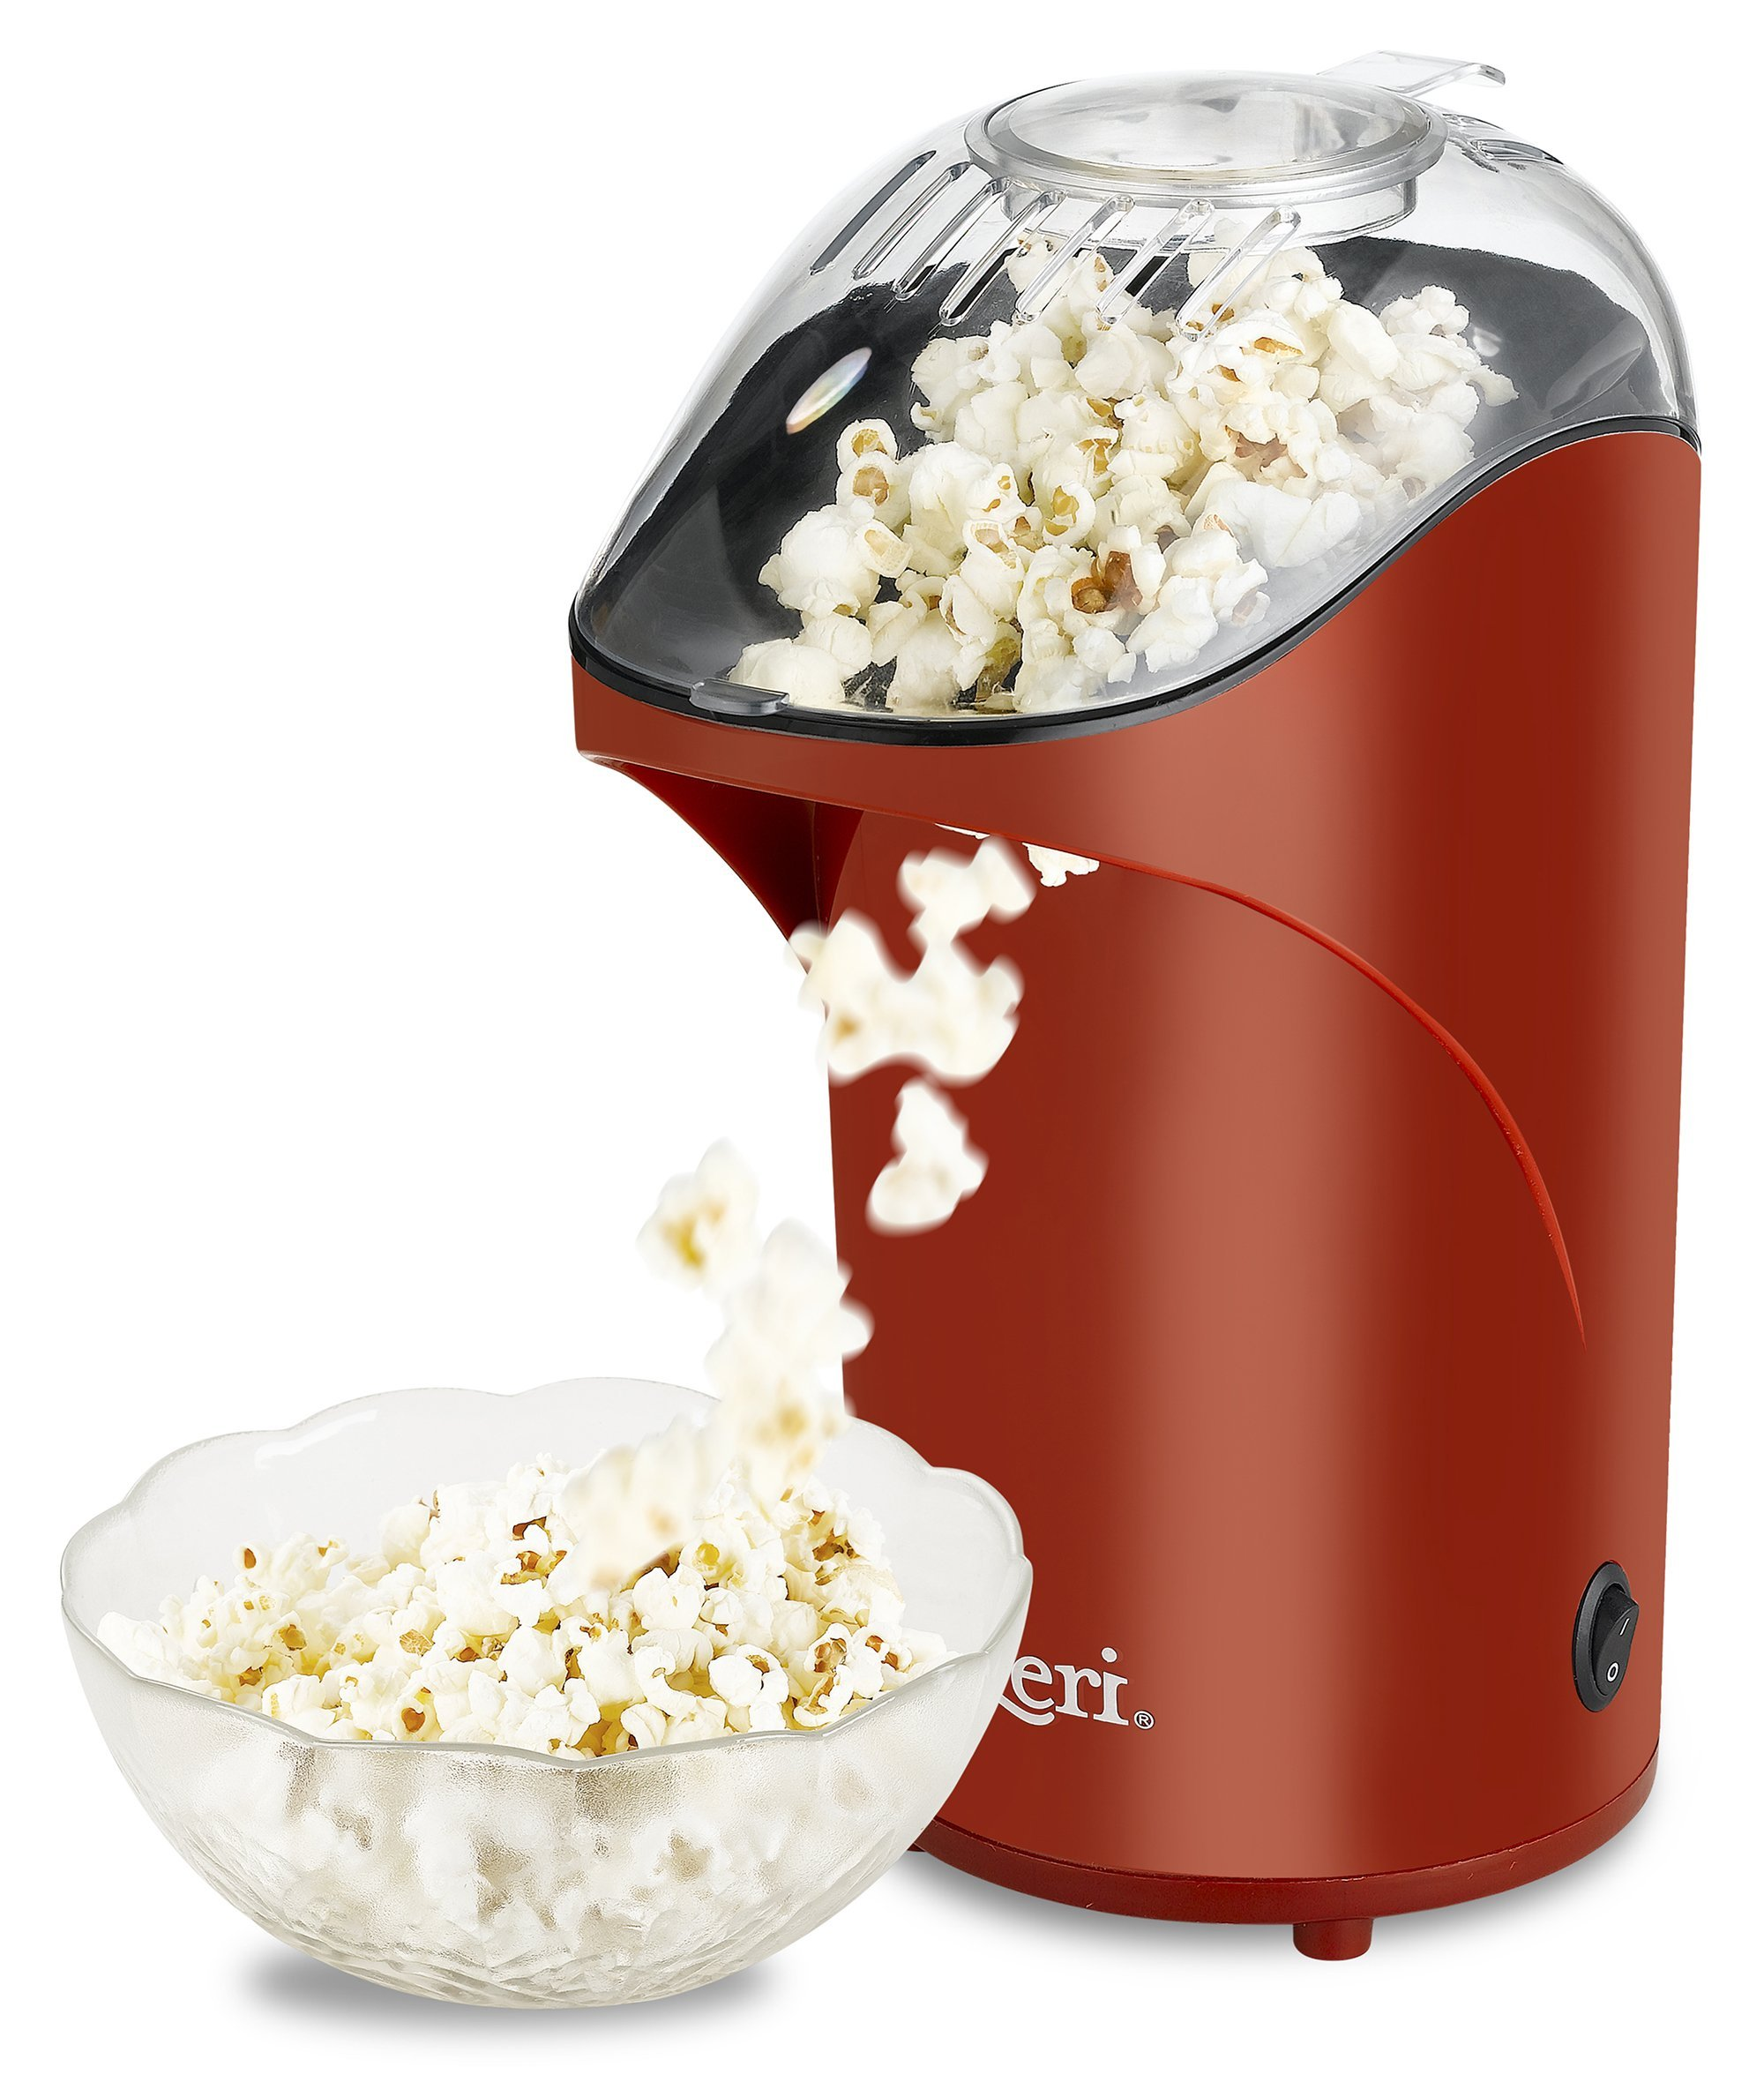 Ozeri OZP1-R2 Movietime II 26 Cup Healthy Popcorn Maker, One Size, Red